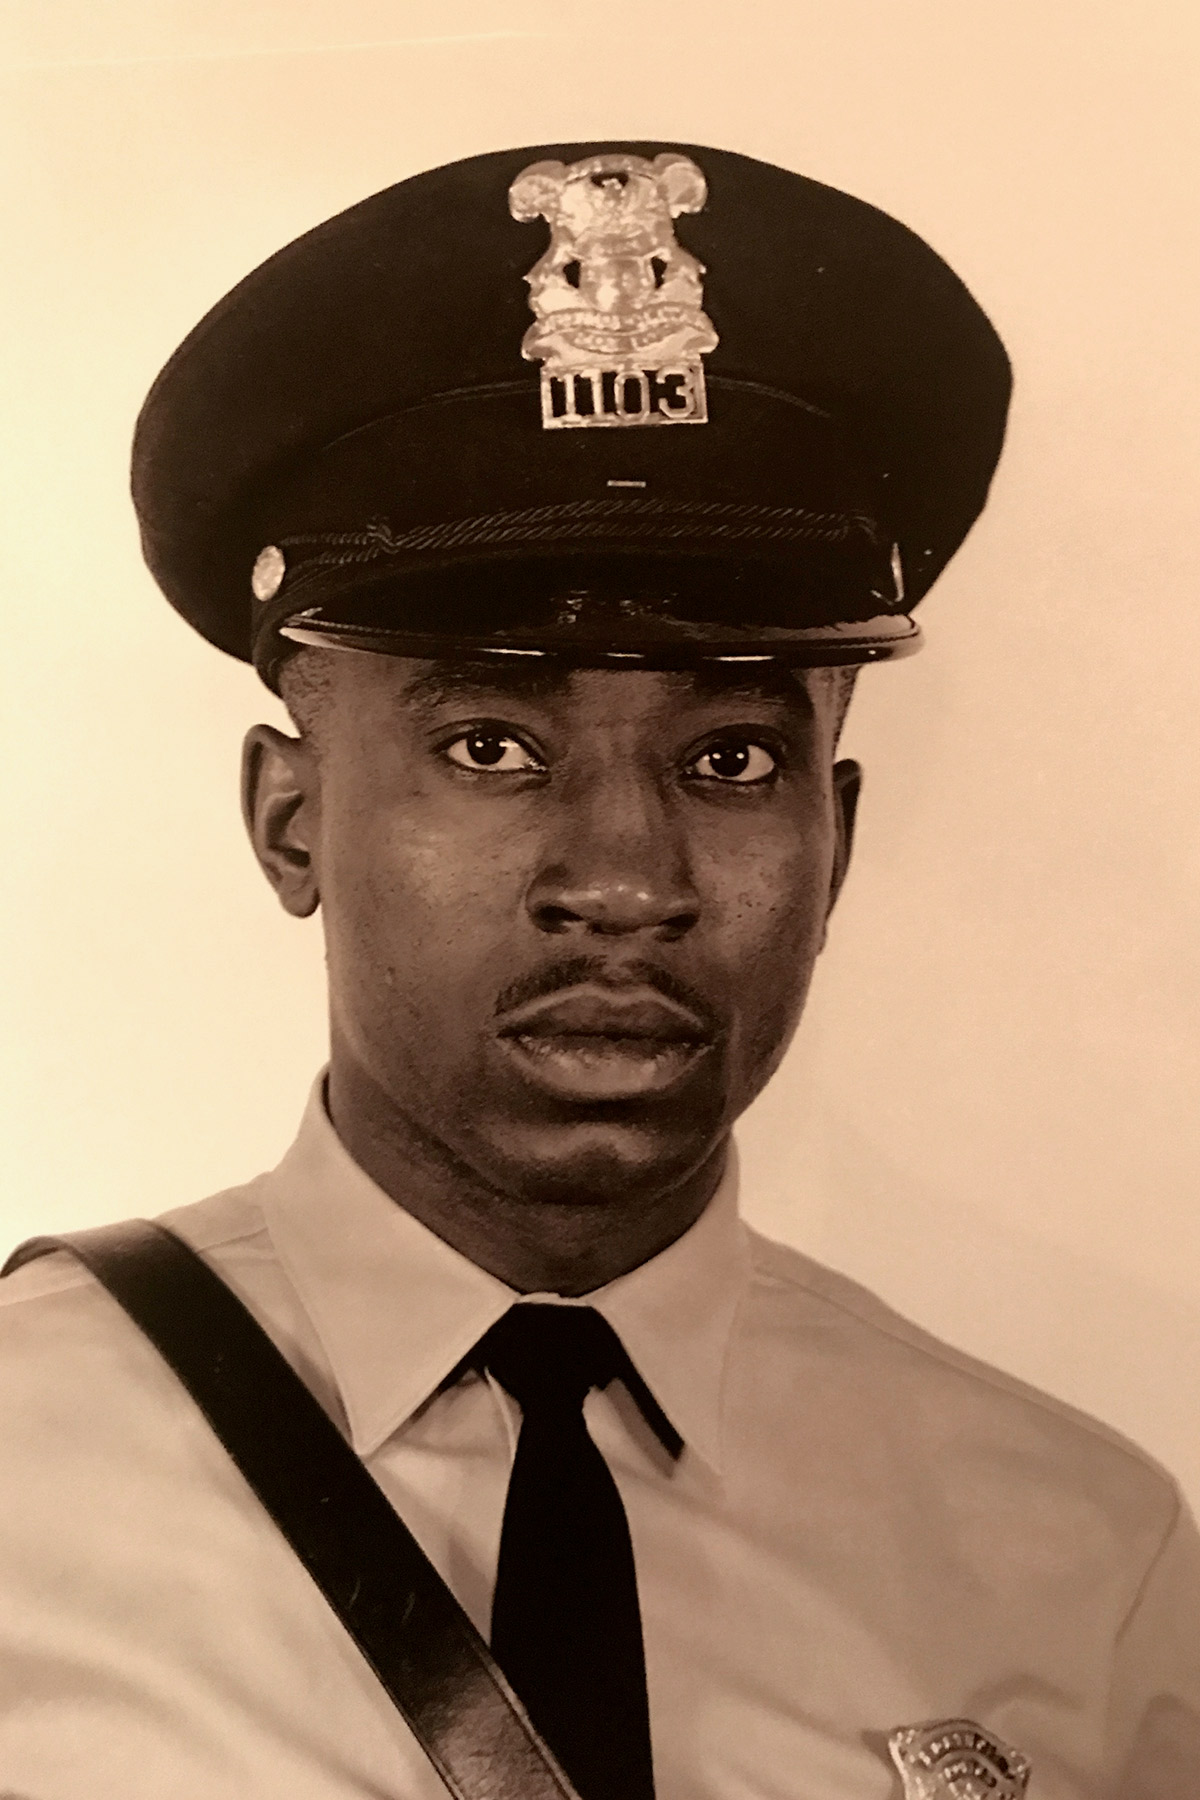 Dallas Police Chief Renee Hall's late father Ulysses Brown.